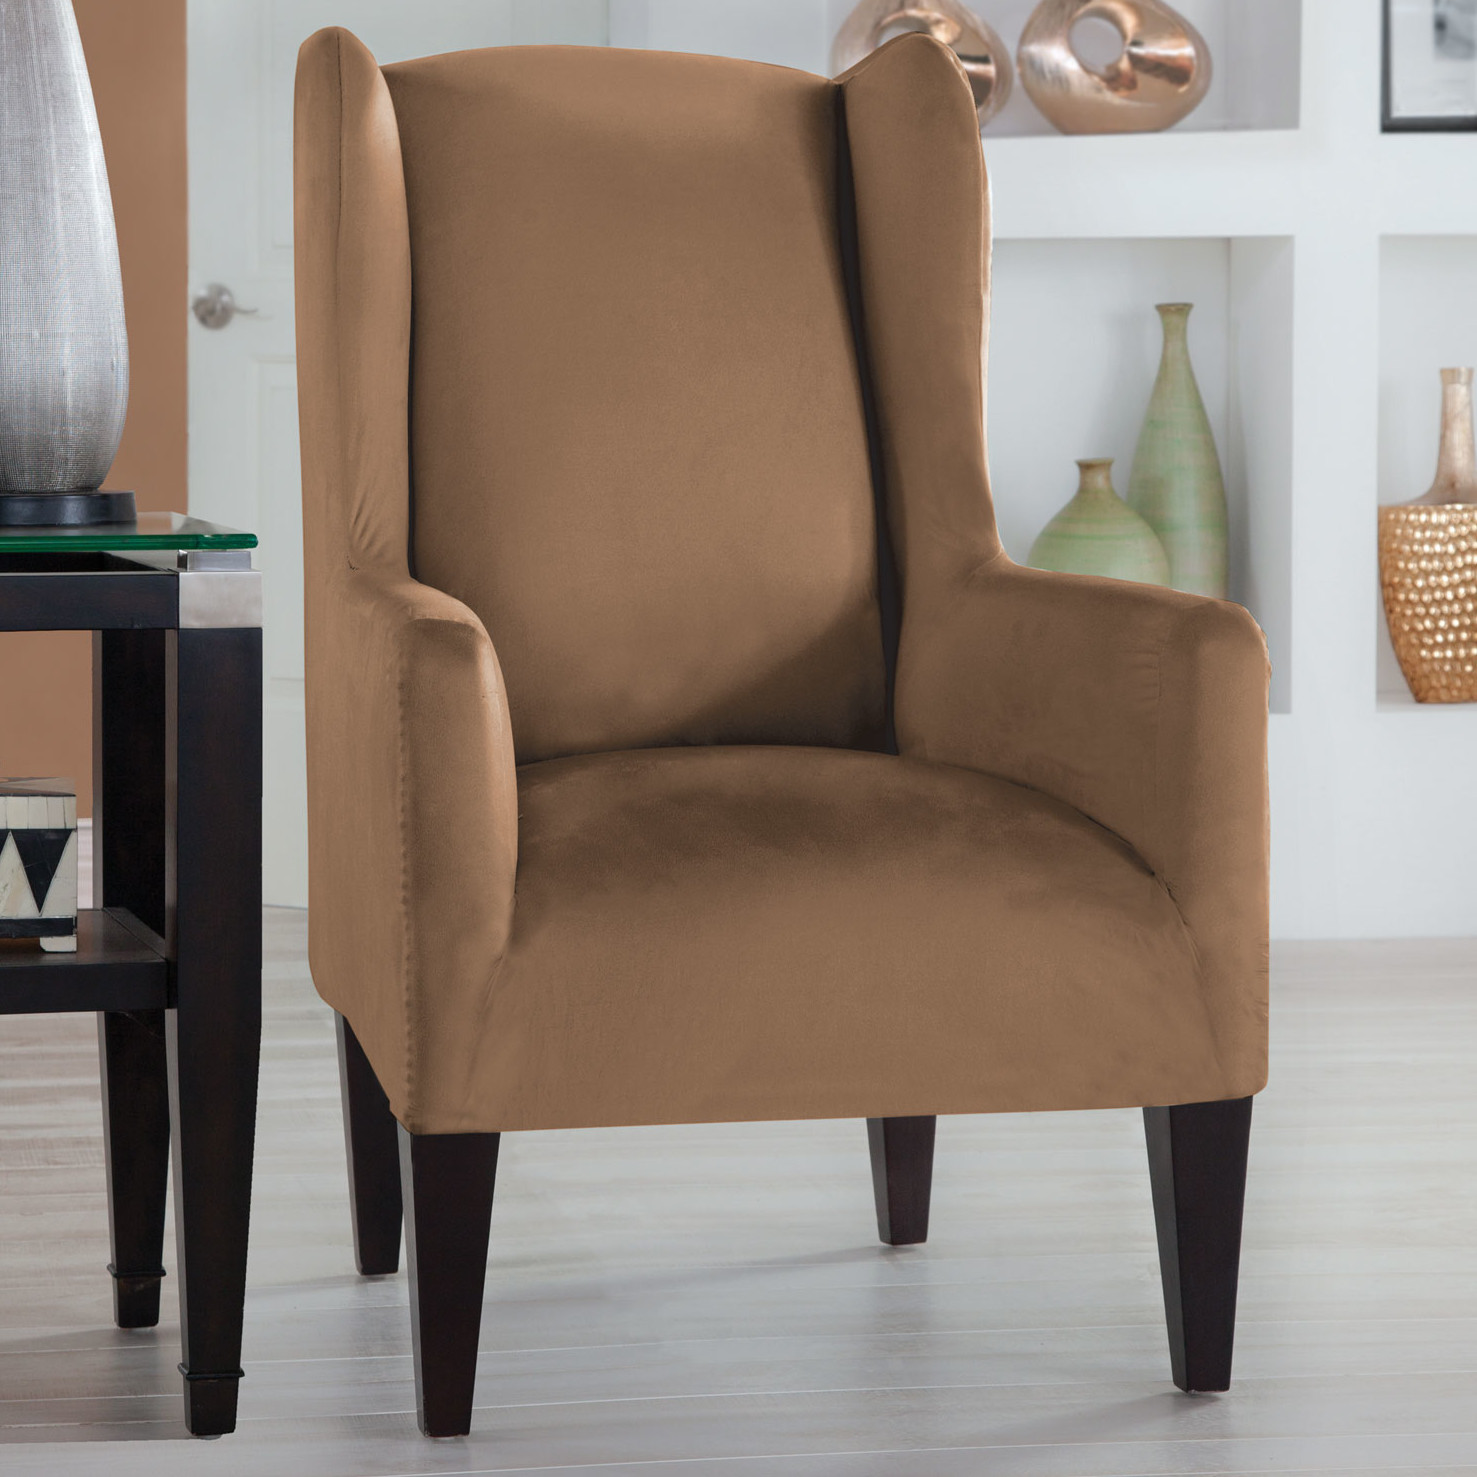 Image of: Simple Wing Chair Recliner